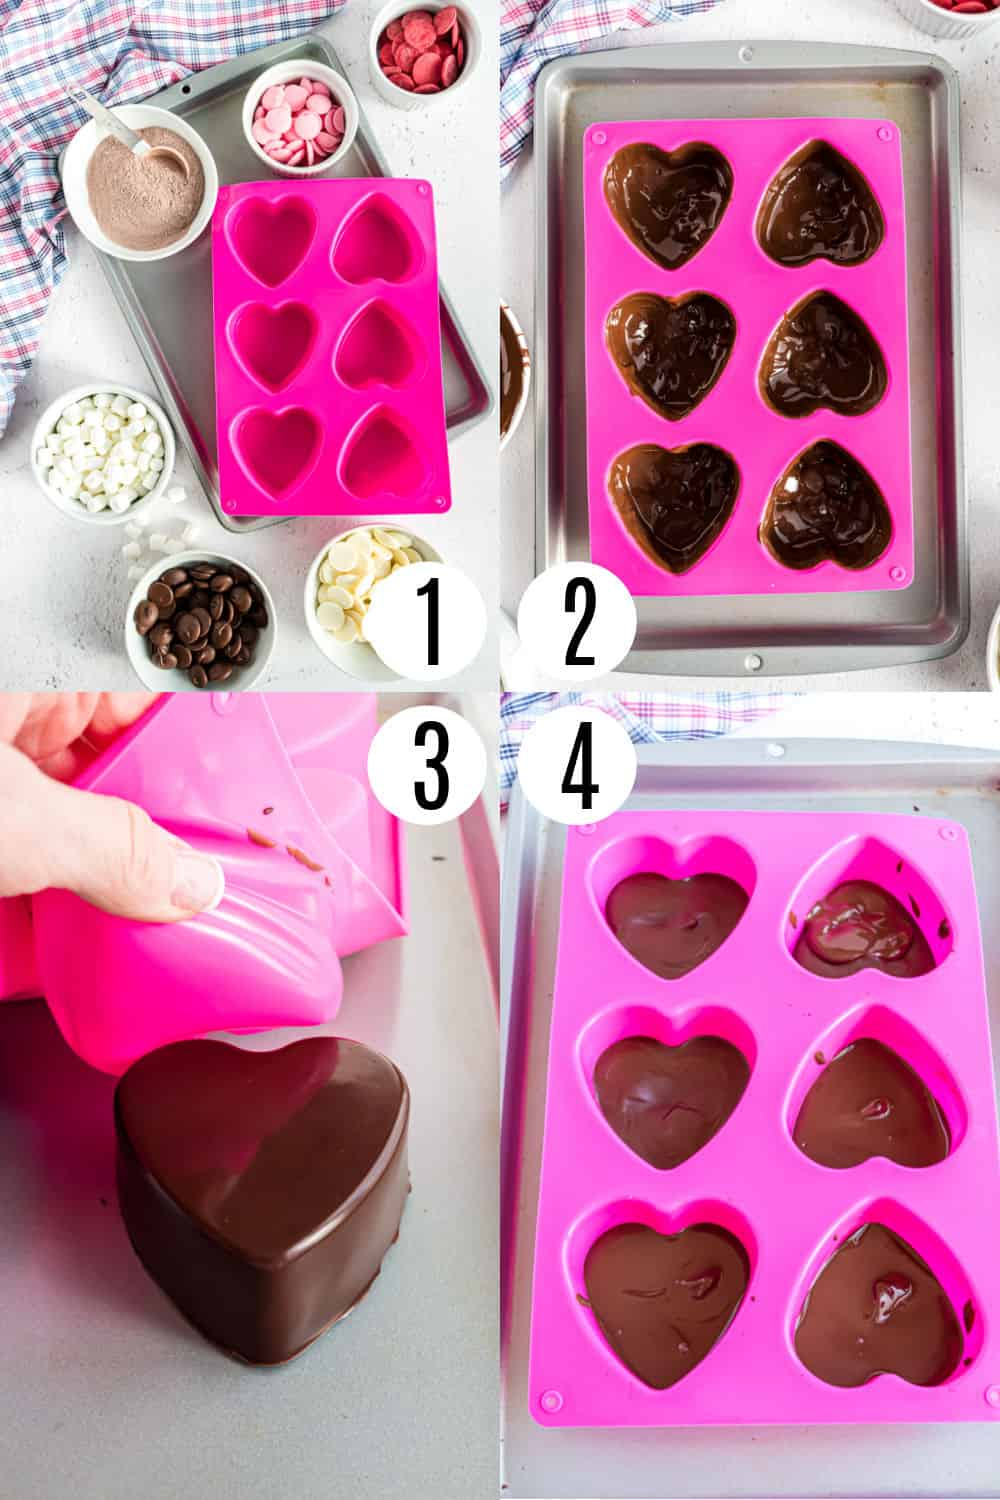 Ingredients, tools, and step to make heart shaped hot cocoa bombs.